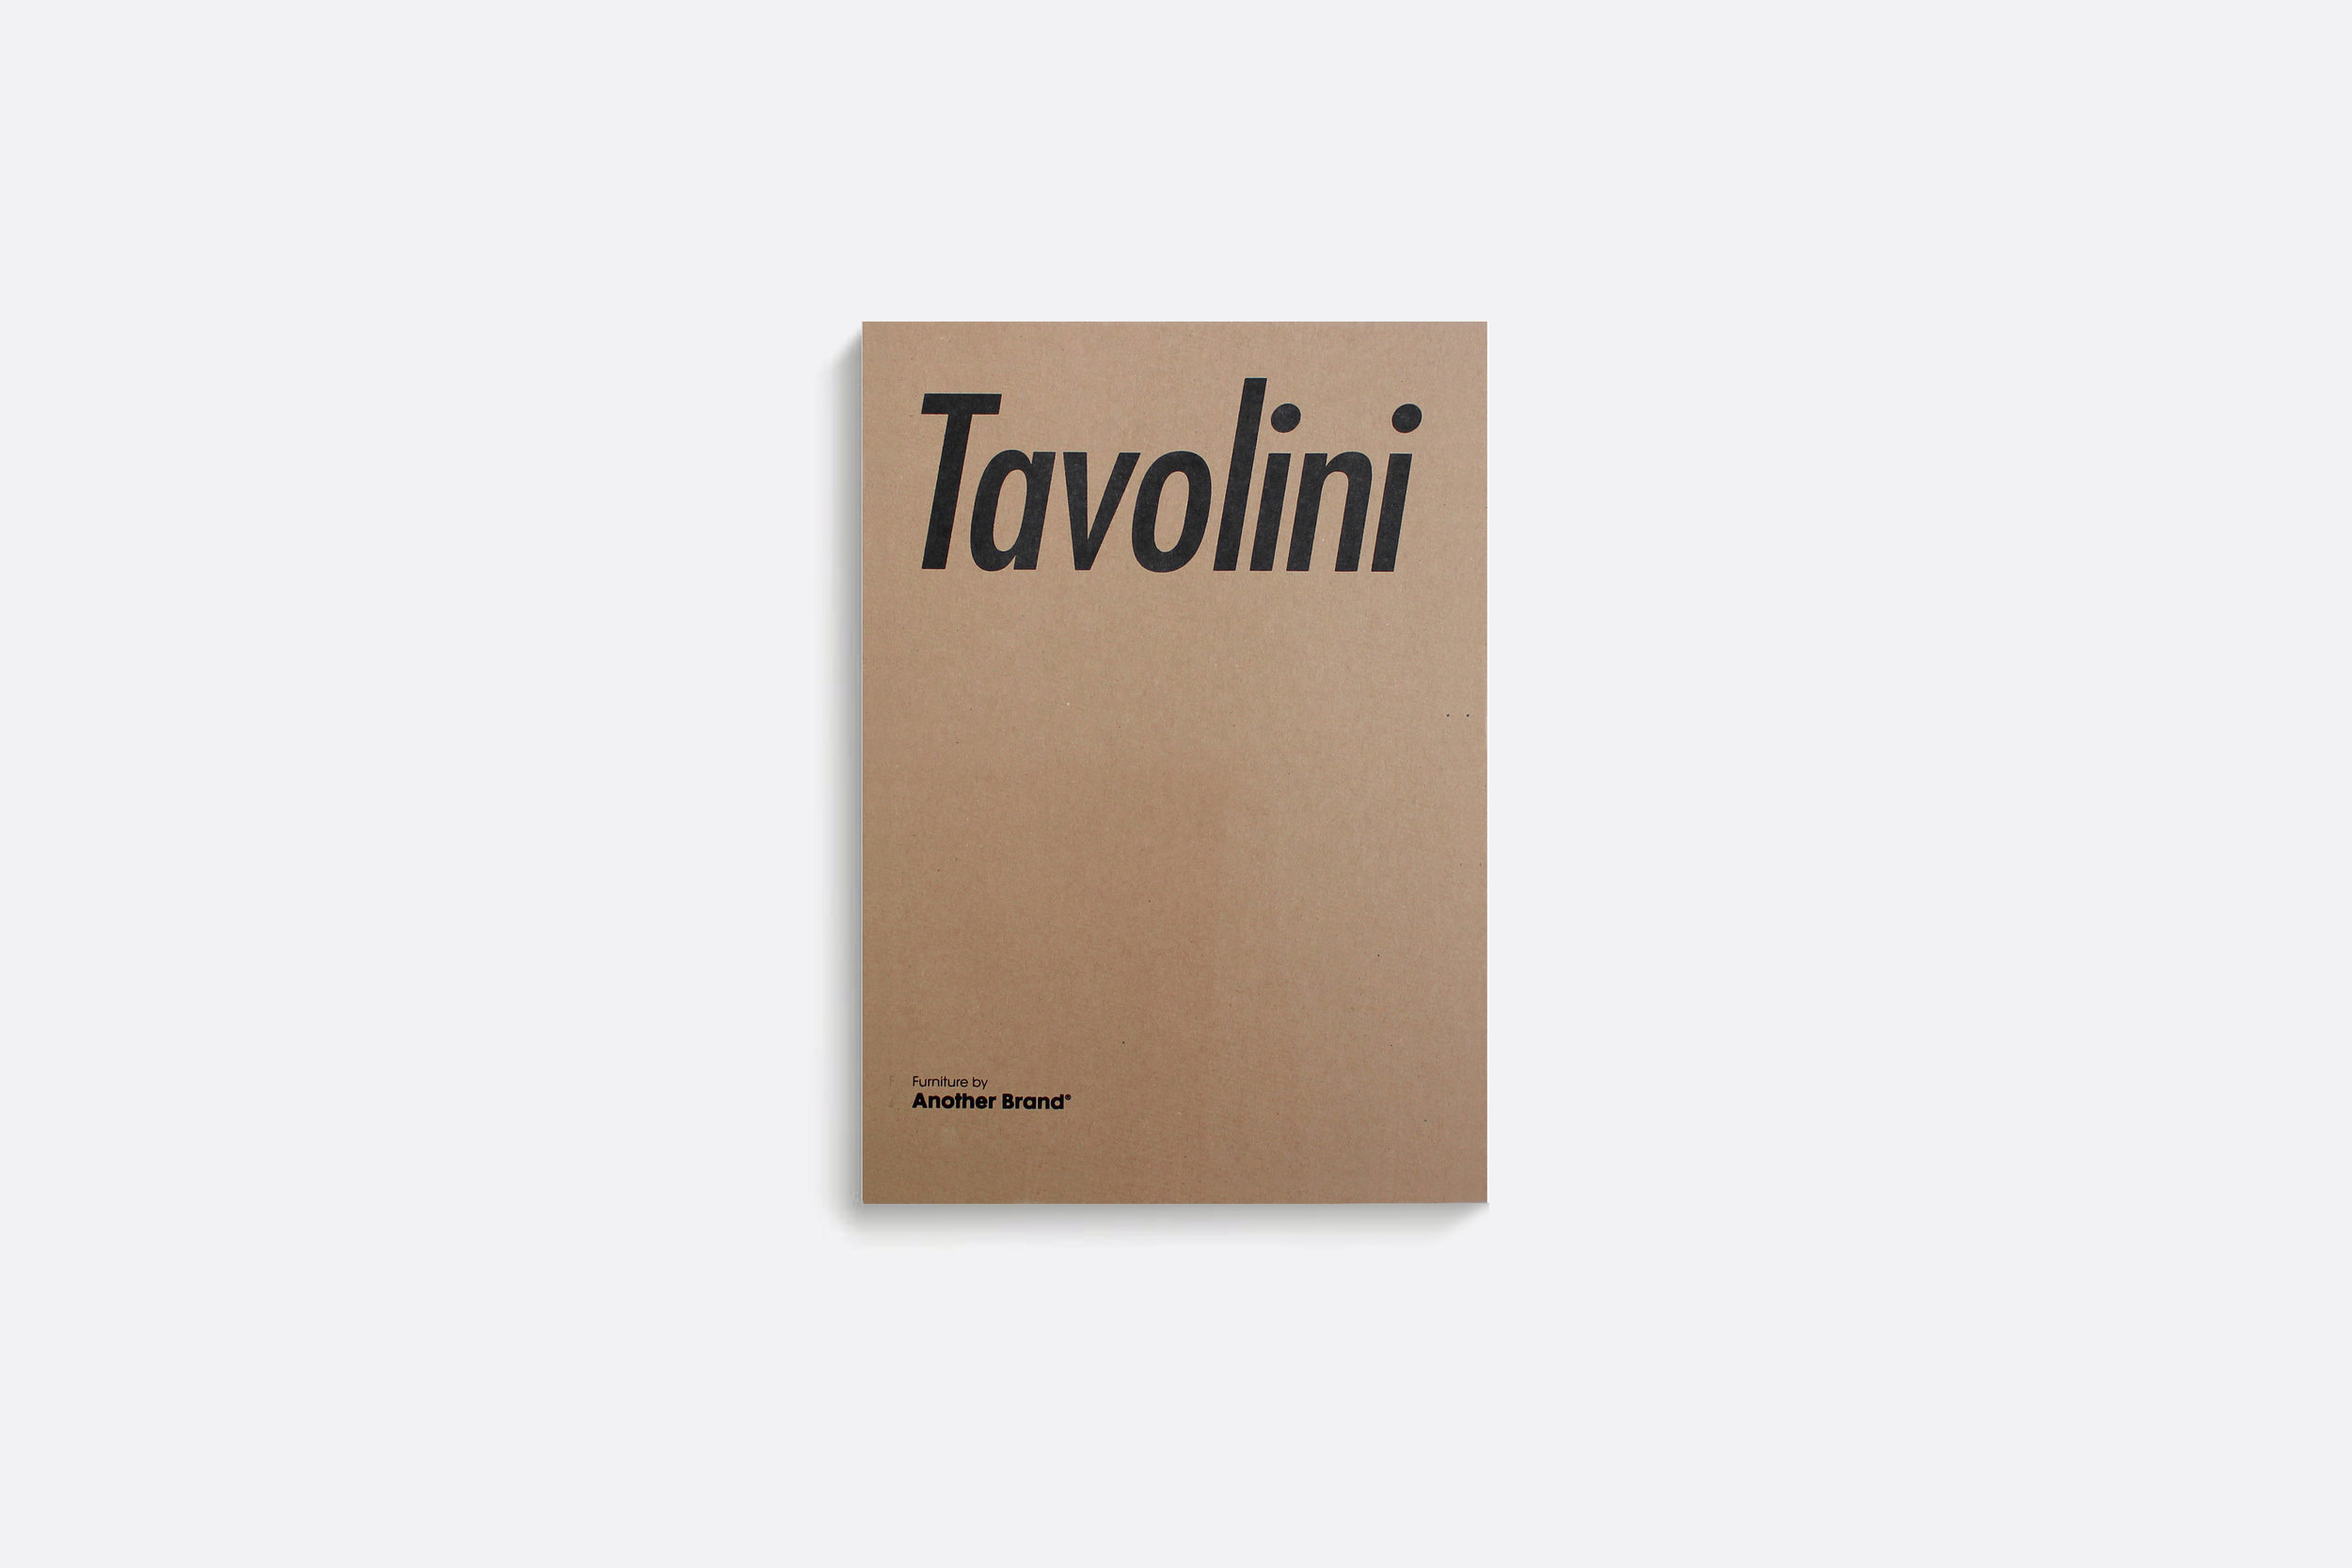 Another-Brand-Tavolini-Furniture-Brochure.jpg